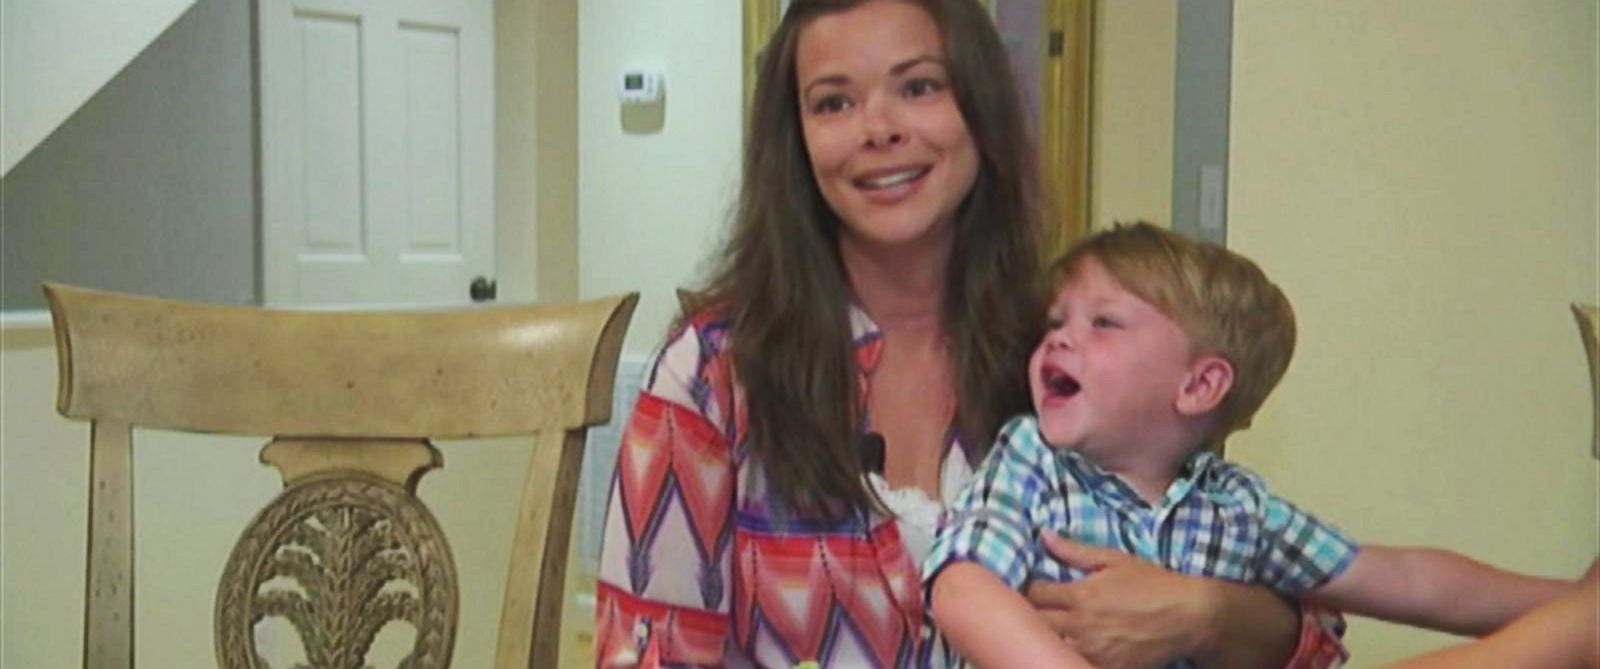 PHOTO: Melissa Wistehuff, pictured with her son Ian. A stranger paid the dinner bill for their family ater Ian had a tantrum in a Morehead City, NC. restaurant.